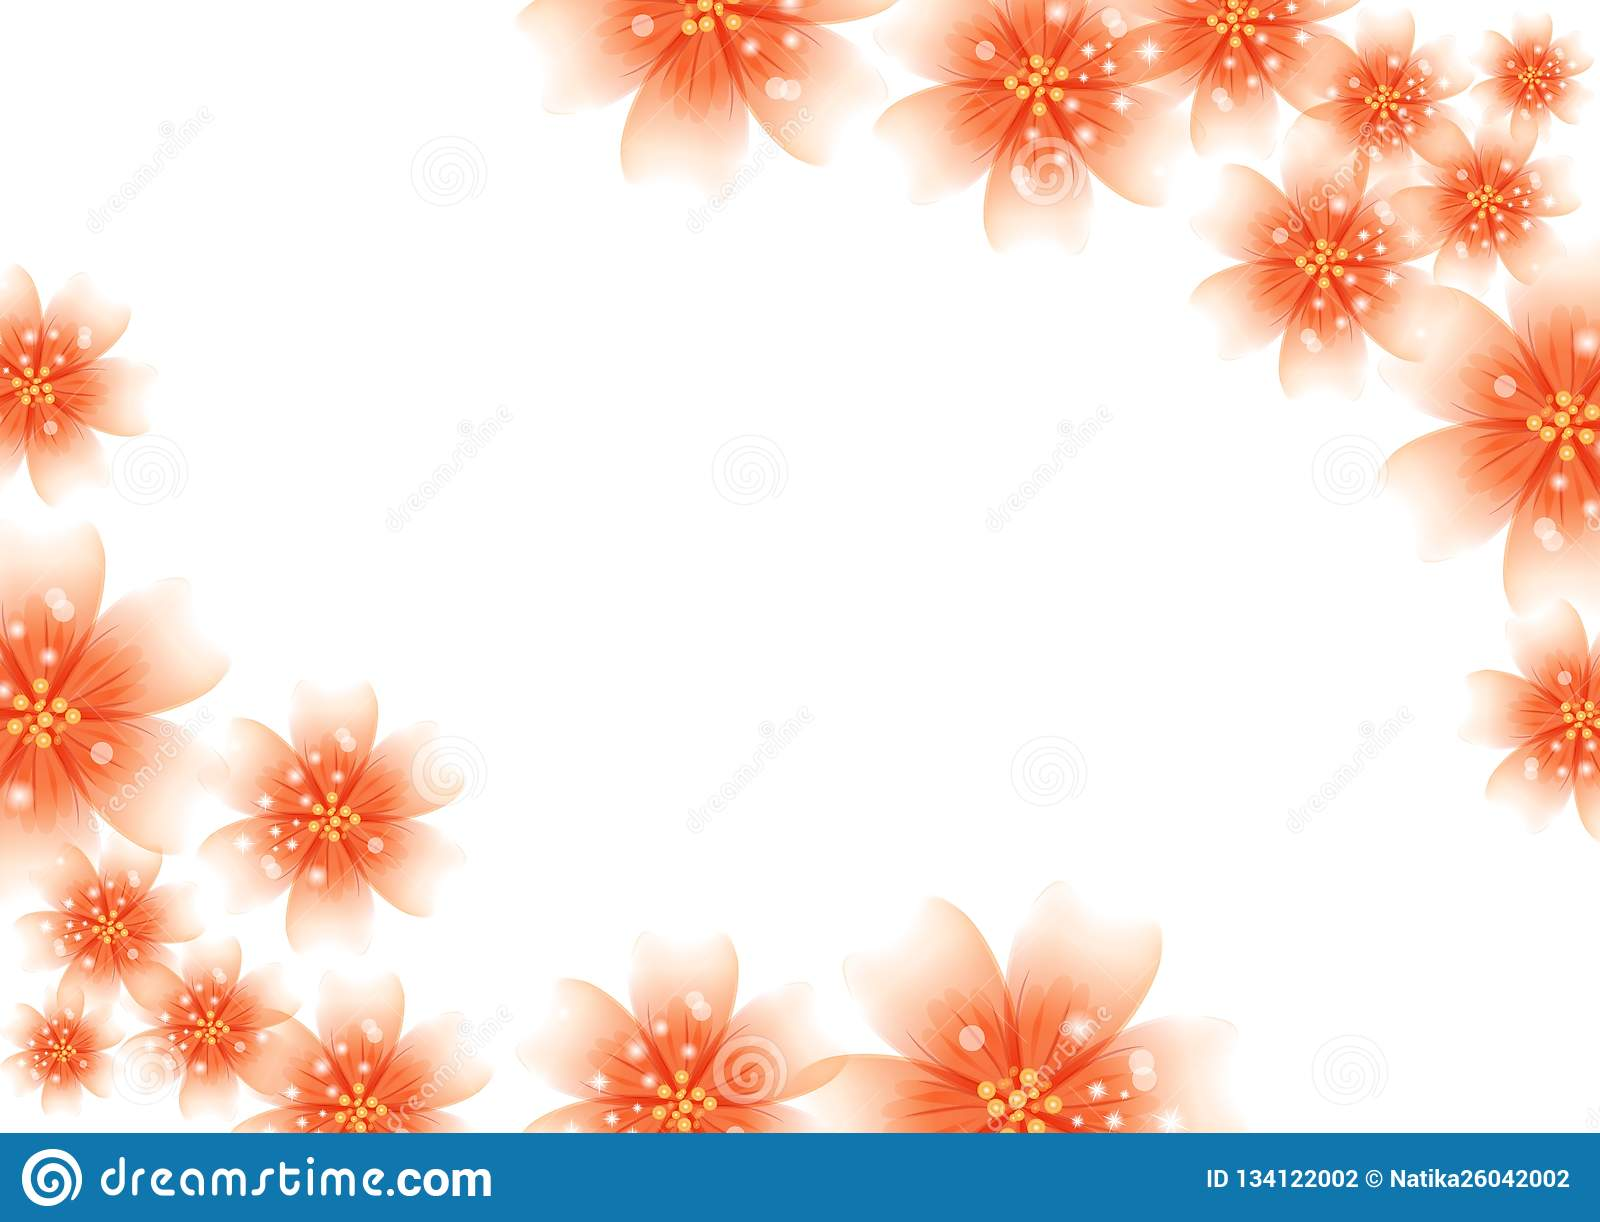 luxury bright colors for floral decoration for invitation cards wedding banners sales brochure cover design stock illustration illustration of pink bouquet 134122002 https www dreamstime com luxury bright flowers white isolated background invitation card decoration wedding banners sales brochure cover design colors image134122002